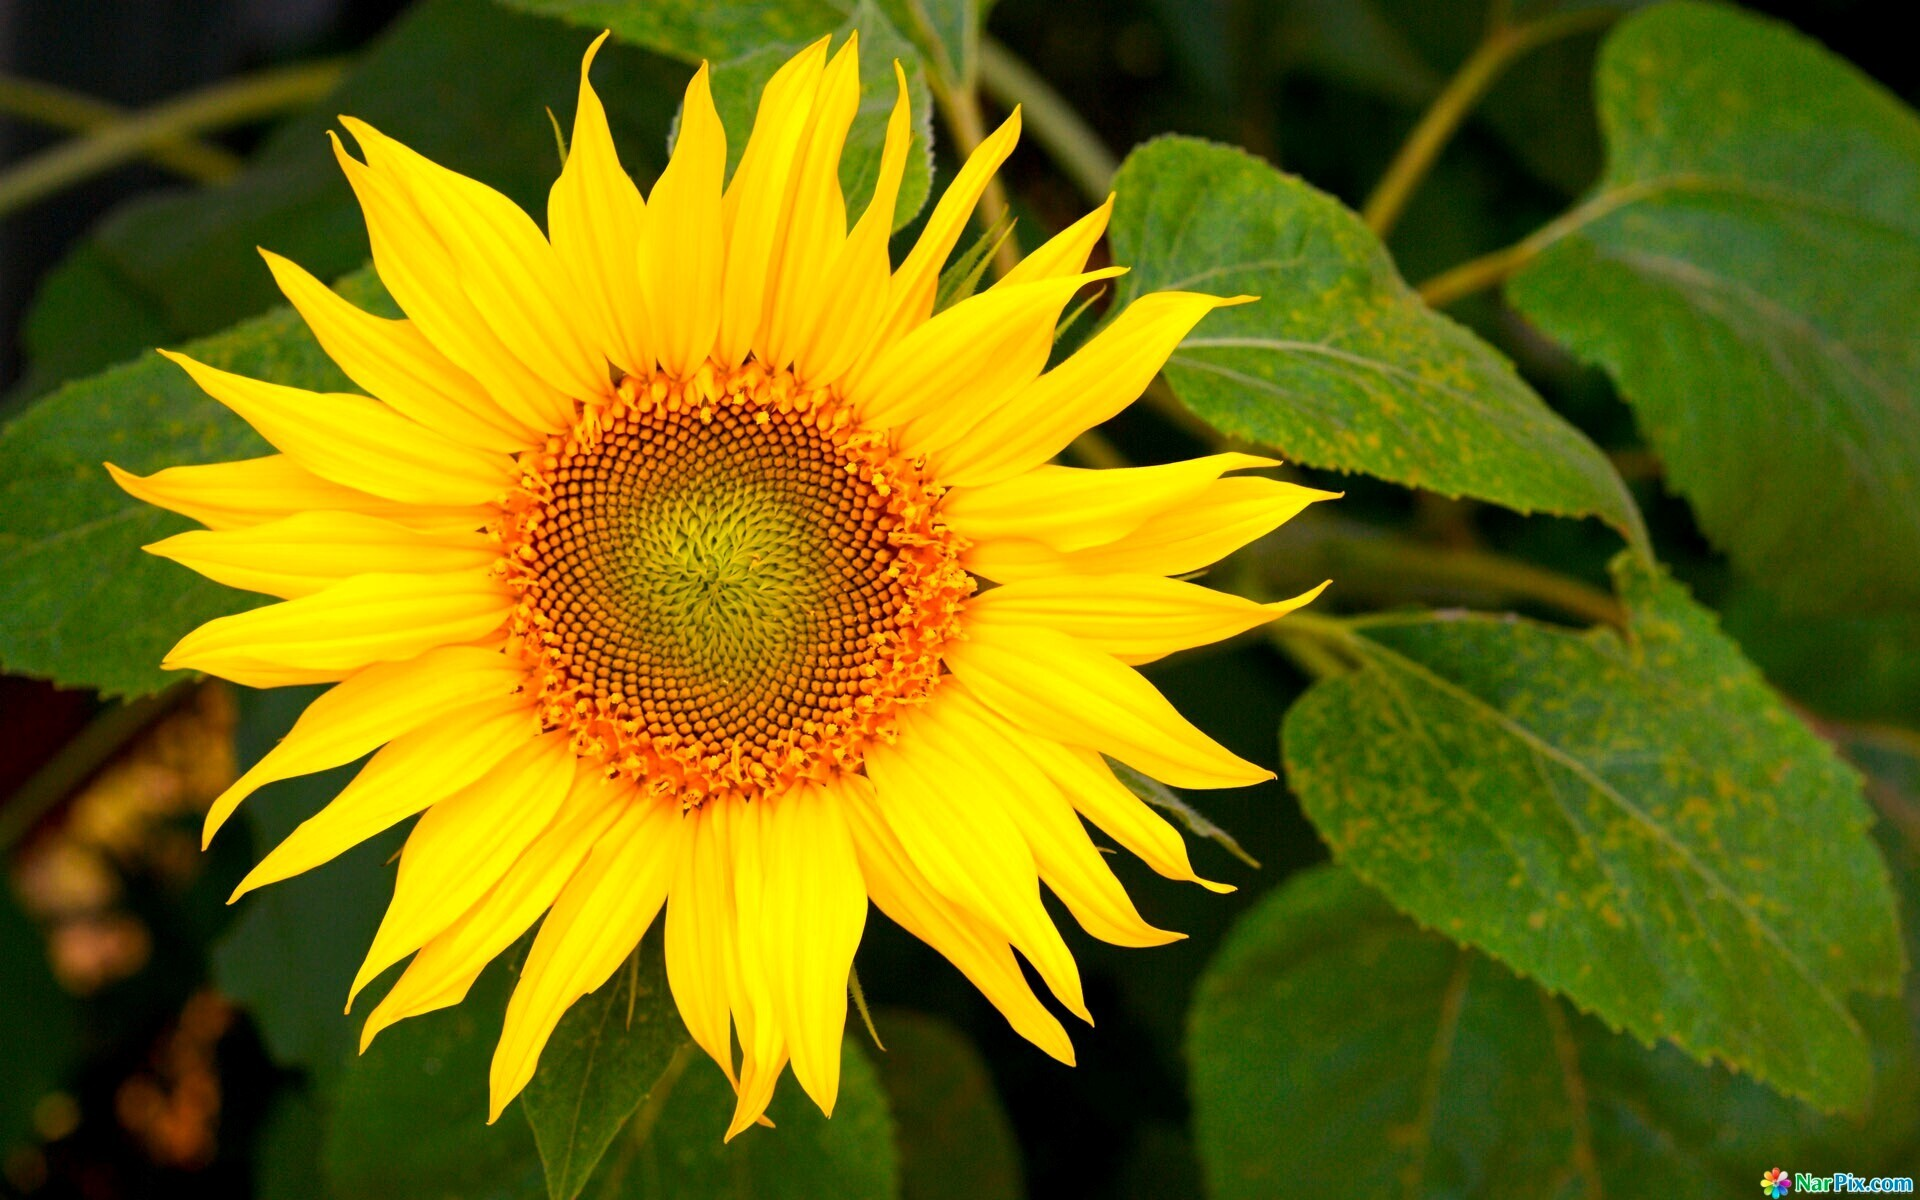 sunflower hd wallpapers images pictures photos download